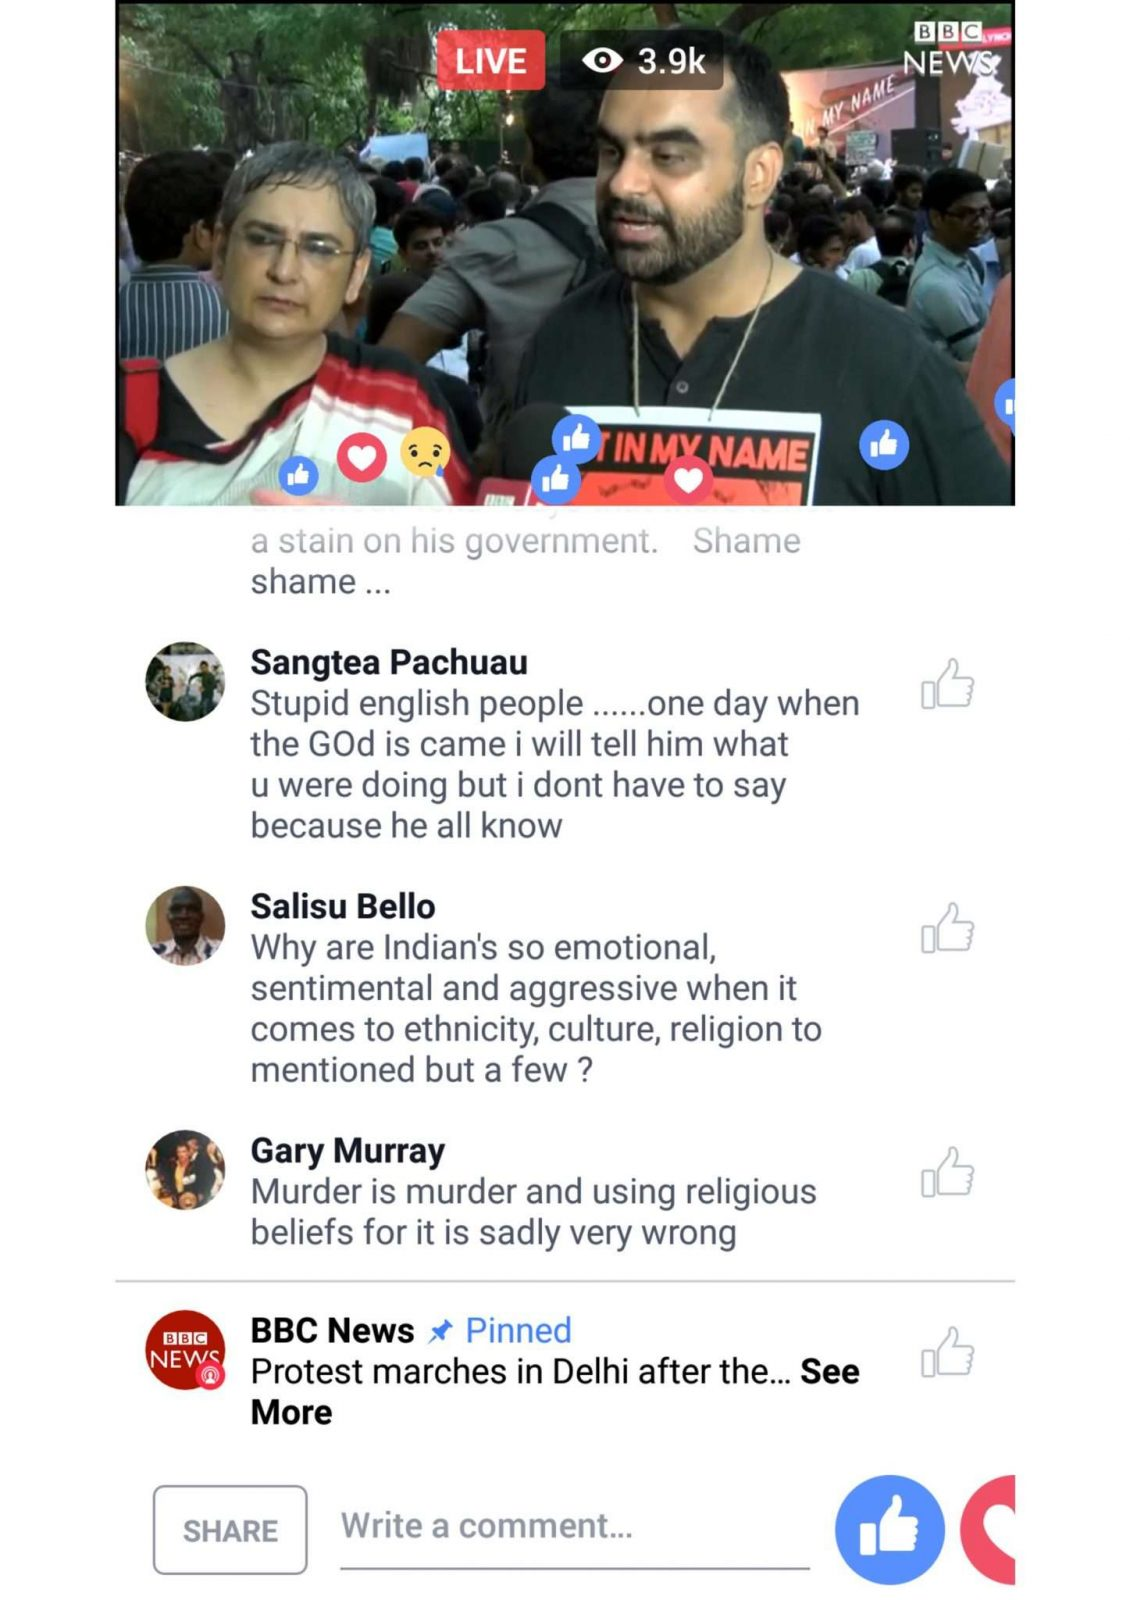 LIVE FROM FACEBOOK… AND THE BBC… AND THE USERS: VIDEO